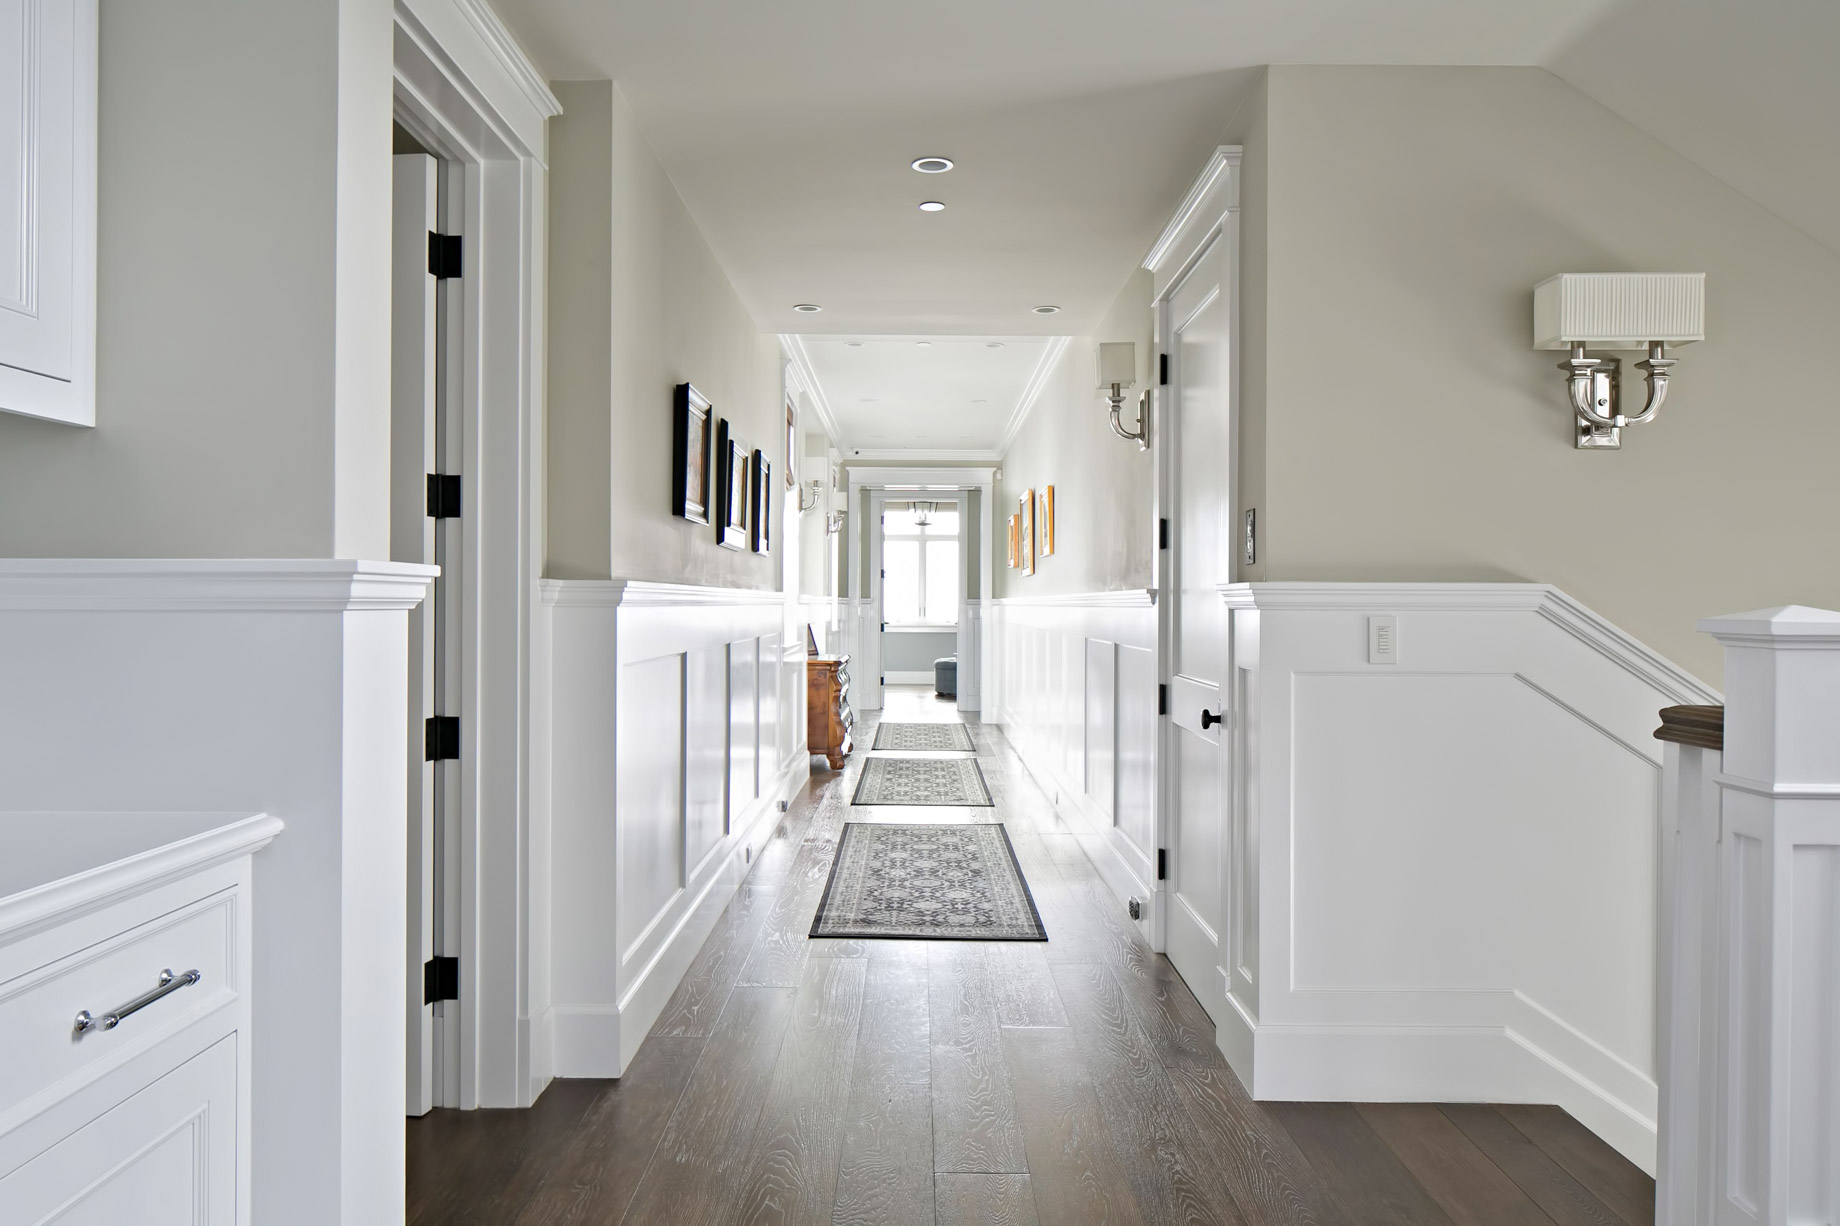 Install Wainscoting on Your Walls - Home Design and Decor - Six Cardinal Rules for Making a Property Look Luxurious